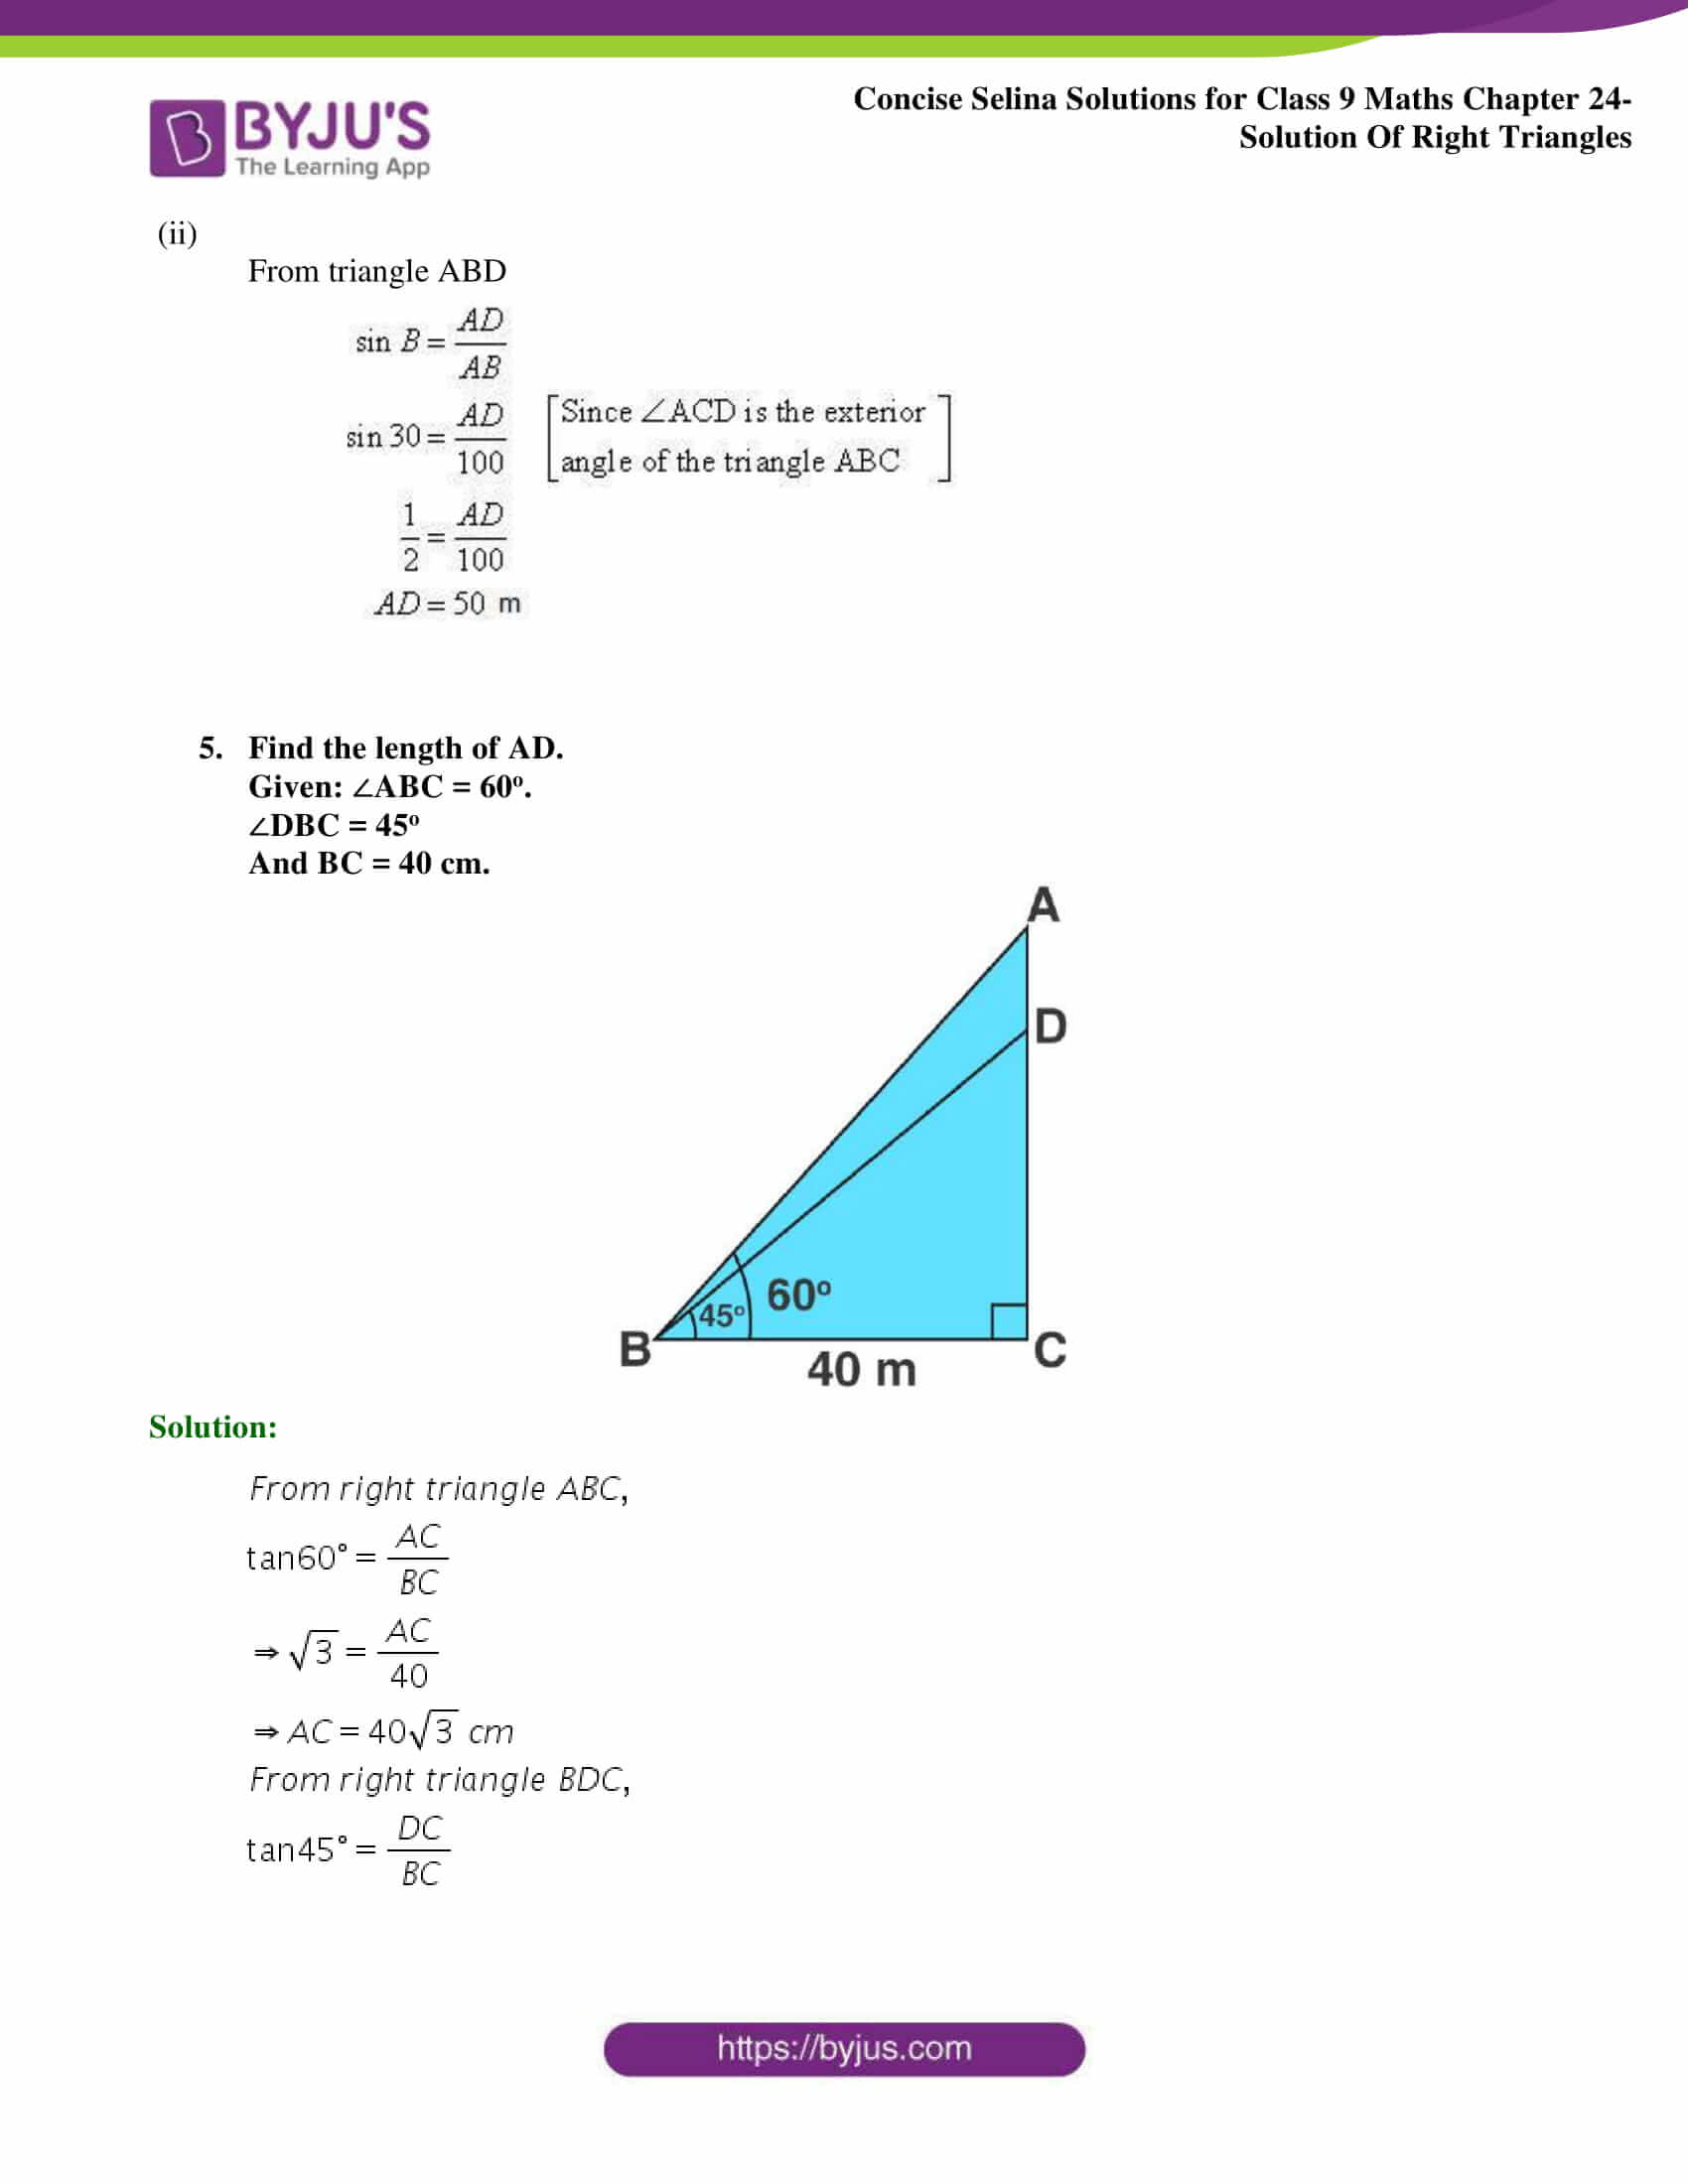 Concise Selina Solutions Class 9 Maths Chapter 24 Solution Of Right Triangles part 06